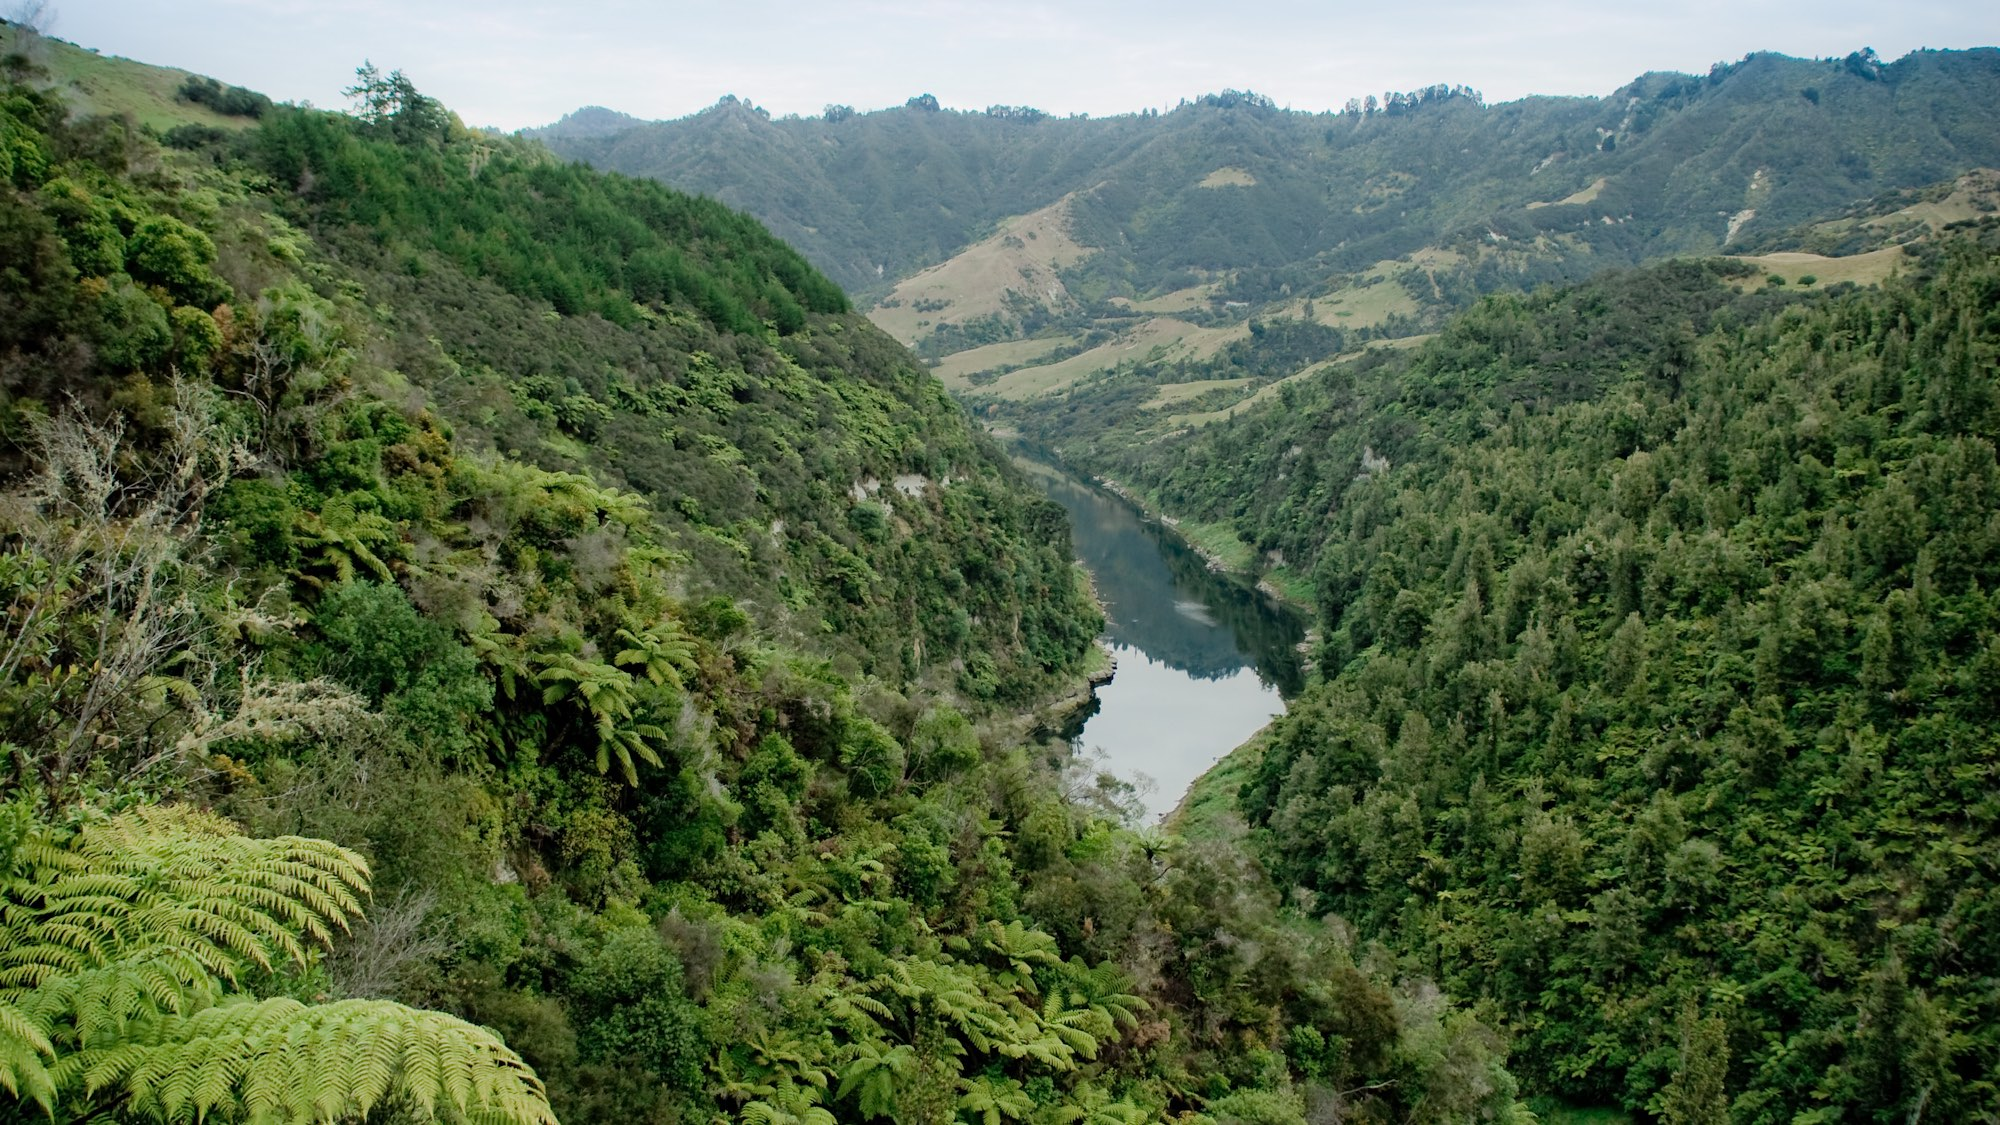 New Zealand's Whanganui River